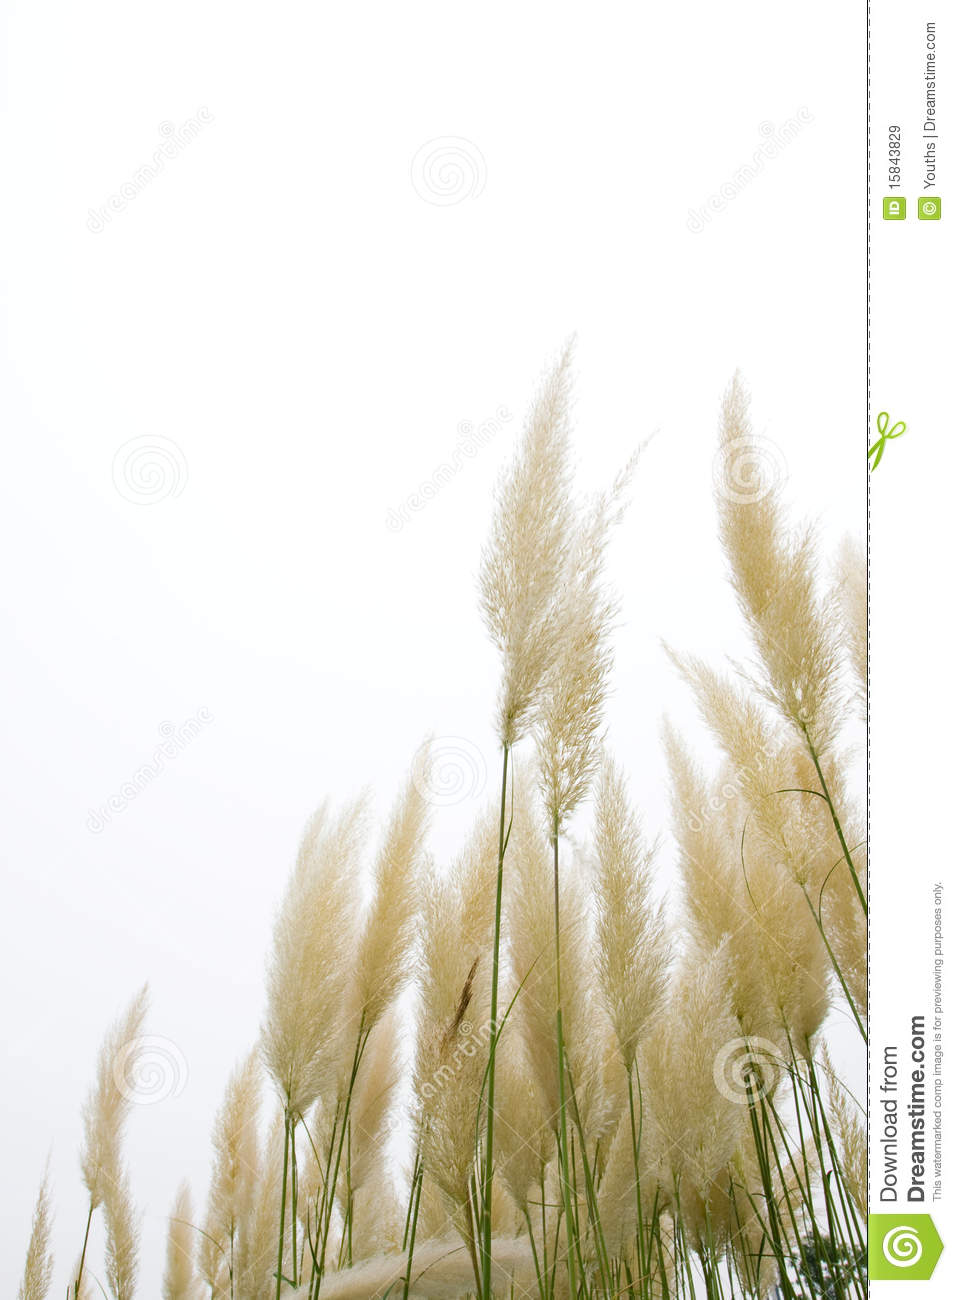 Autumn Leaf Fall Wallpaper Reed Flowers Royalty Free Stock Images Image 15843829